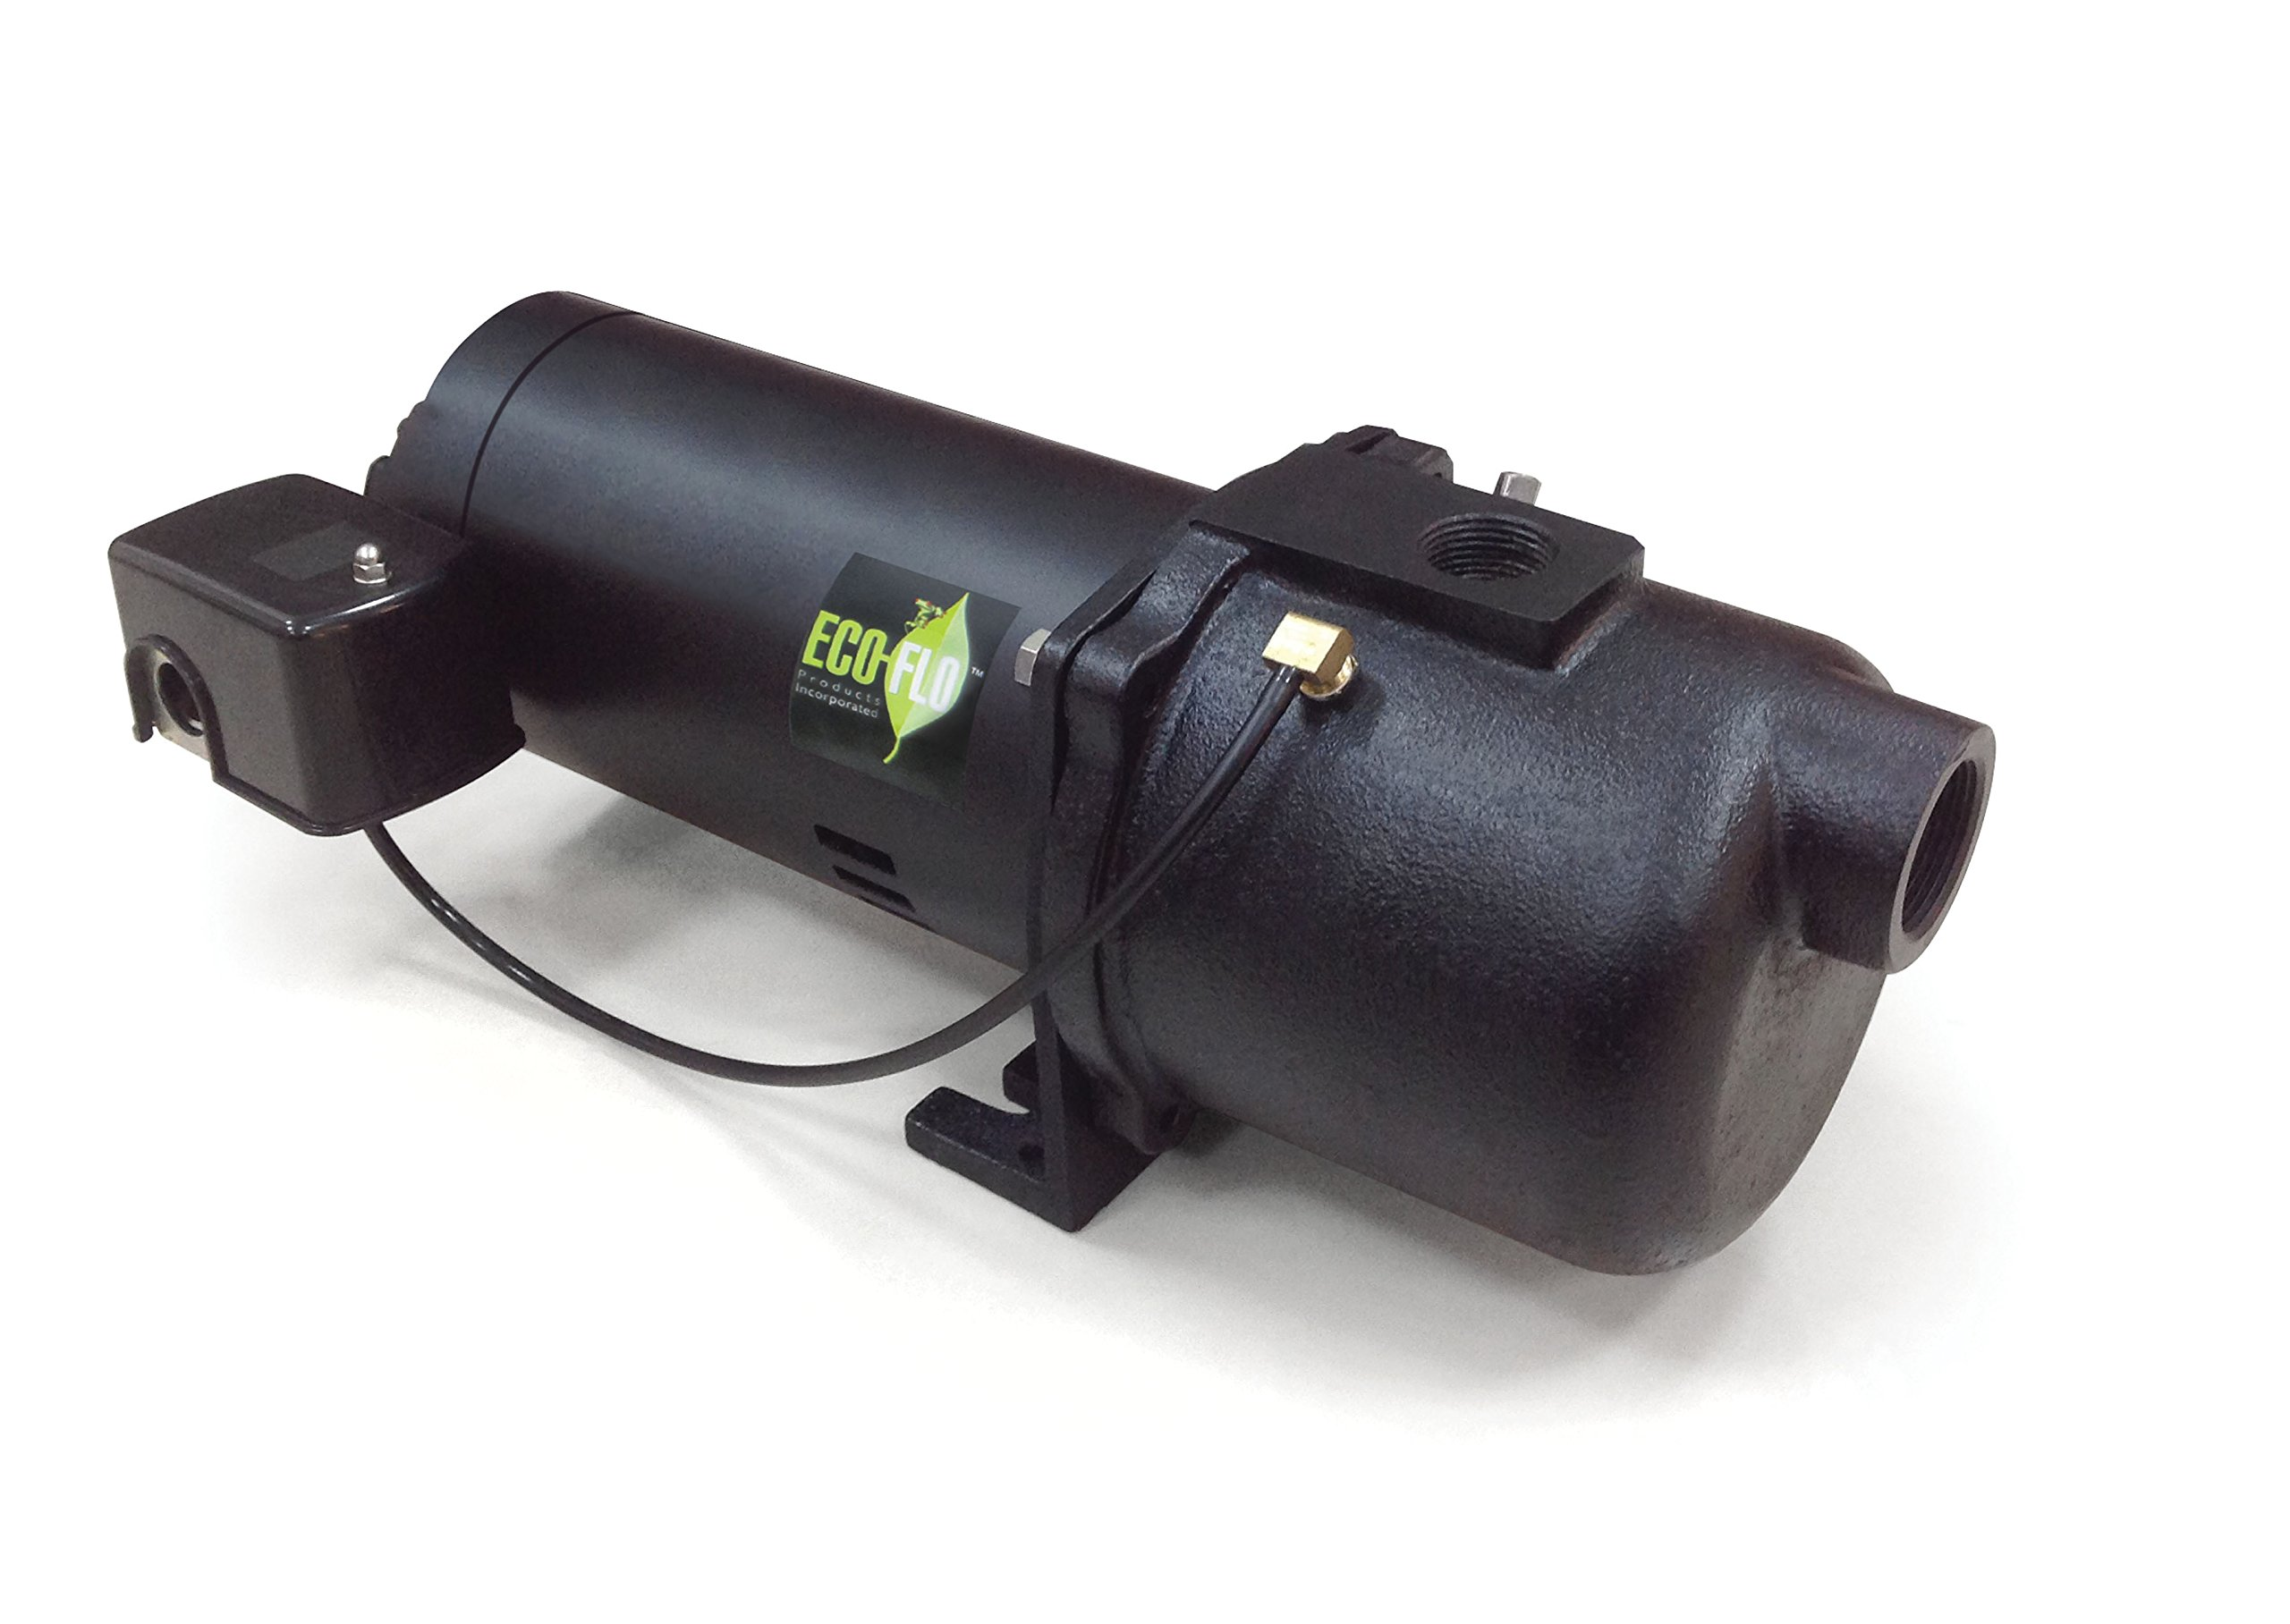 ECO-FLO Products EFSWJ5 Shallow Water Well Jet Pump, 1/2 HP, 7 GPM